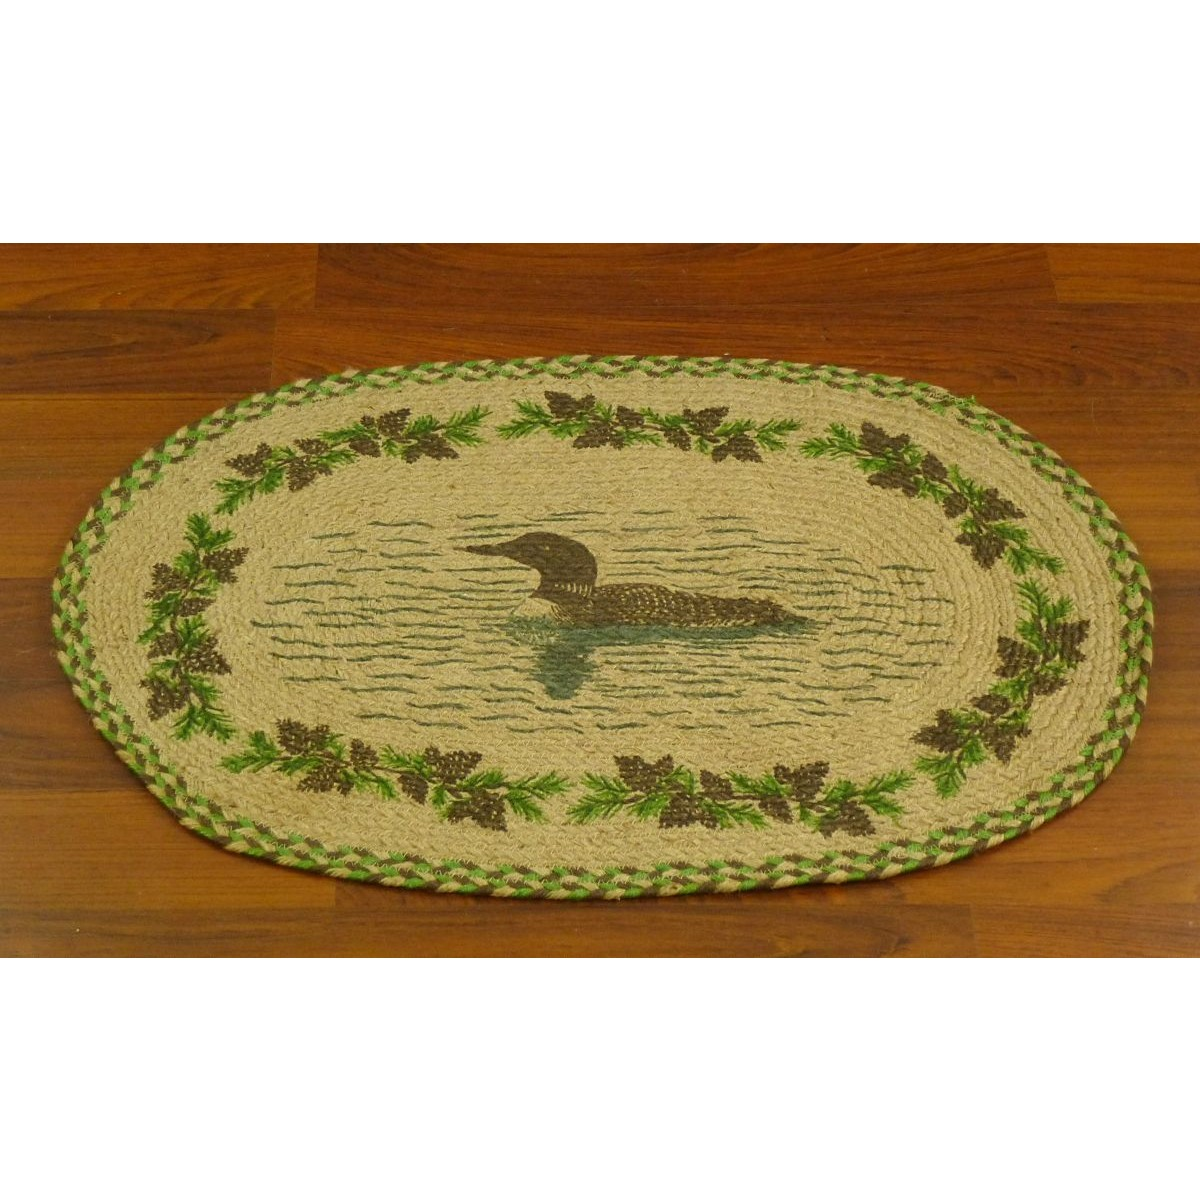 Home Clearance Jute Braided Rugs 20 X 30 Golden Pond Oval